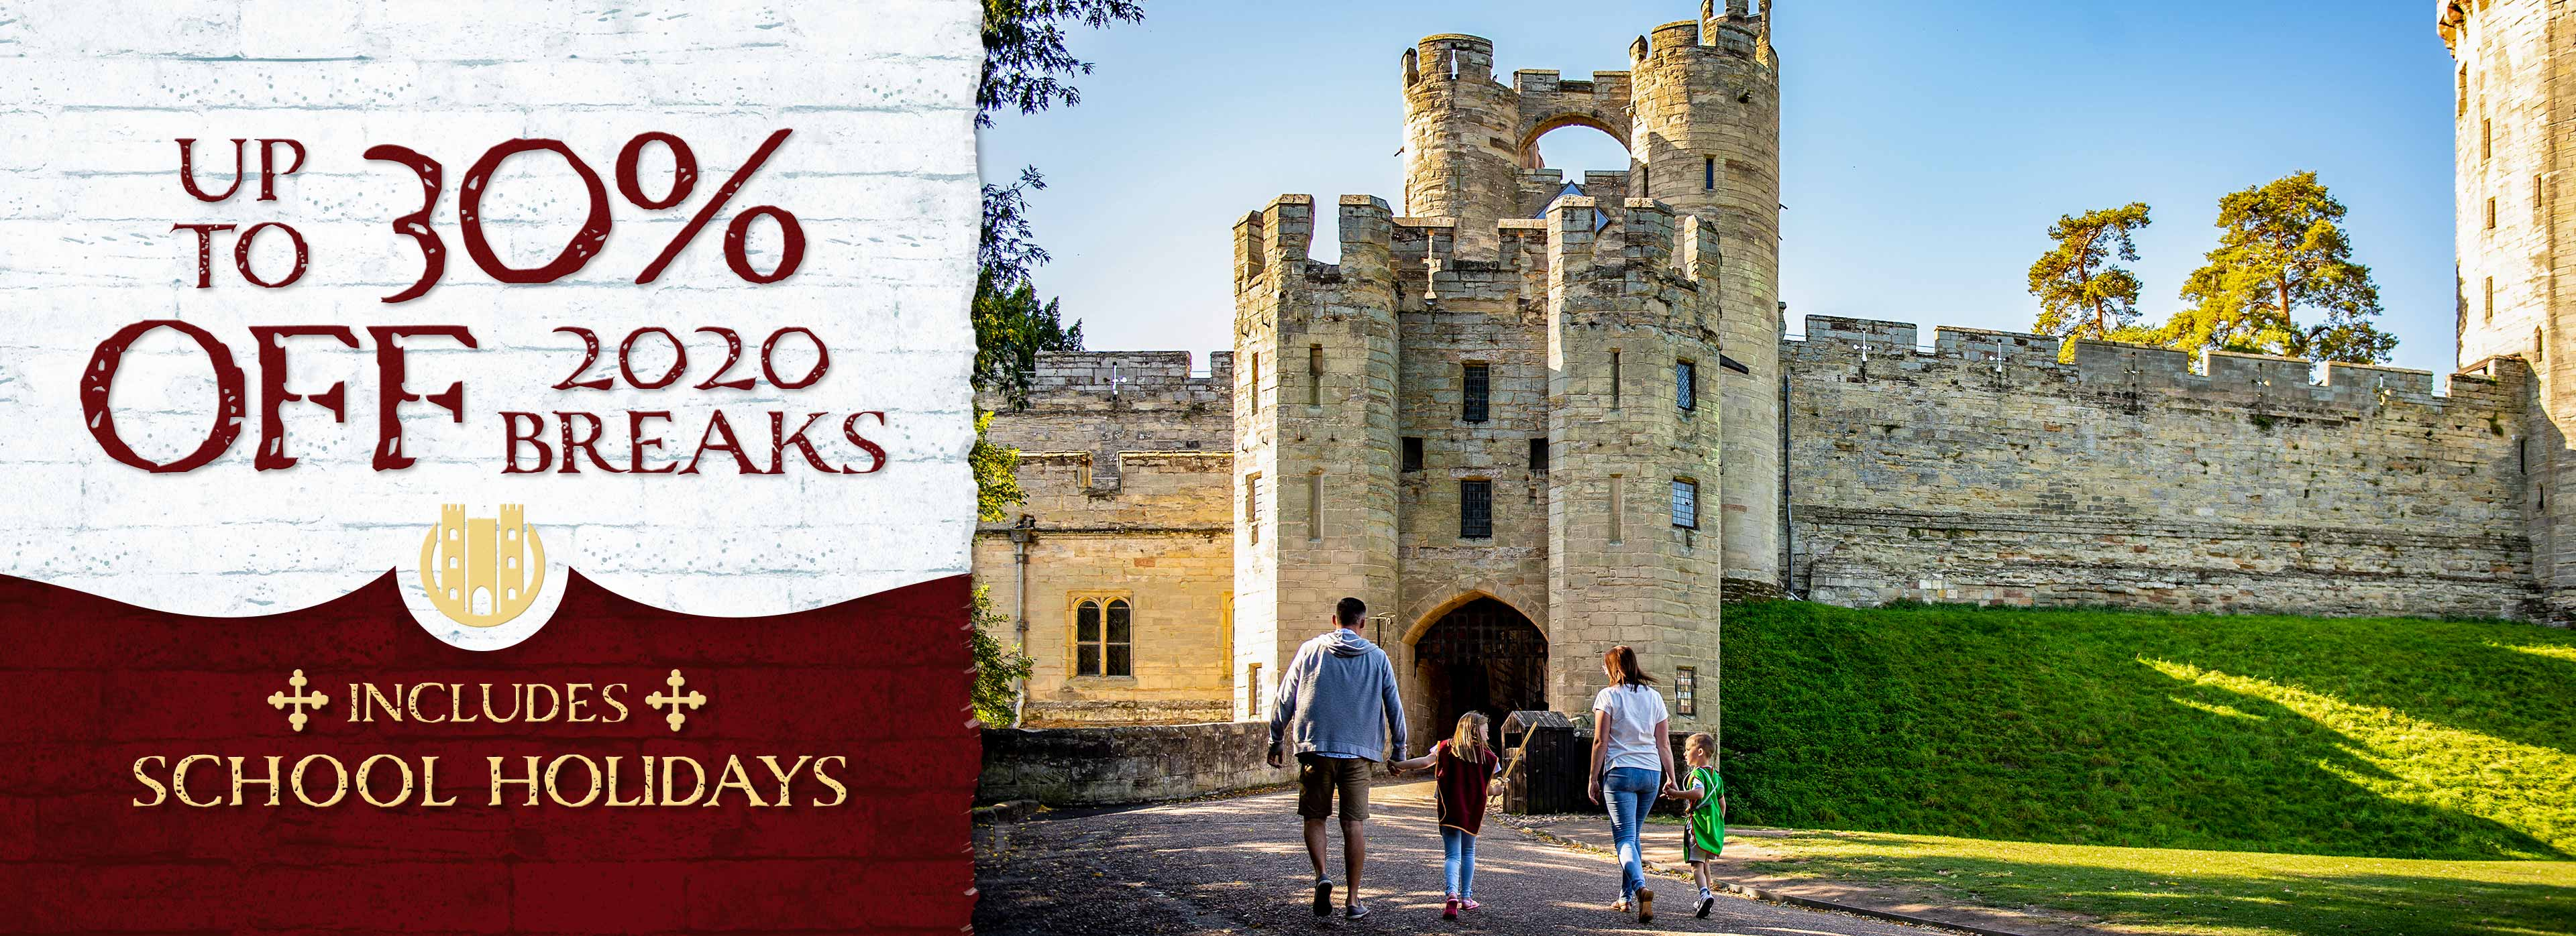 Save up to 30% on 2020 breaks at Warwick Castle